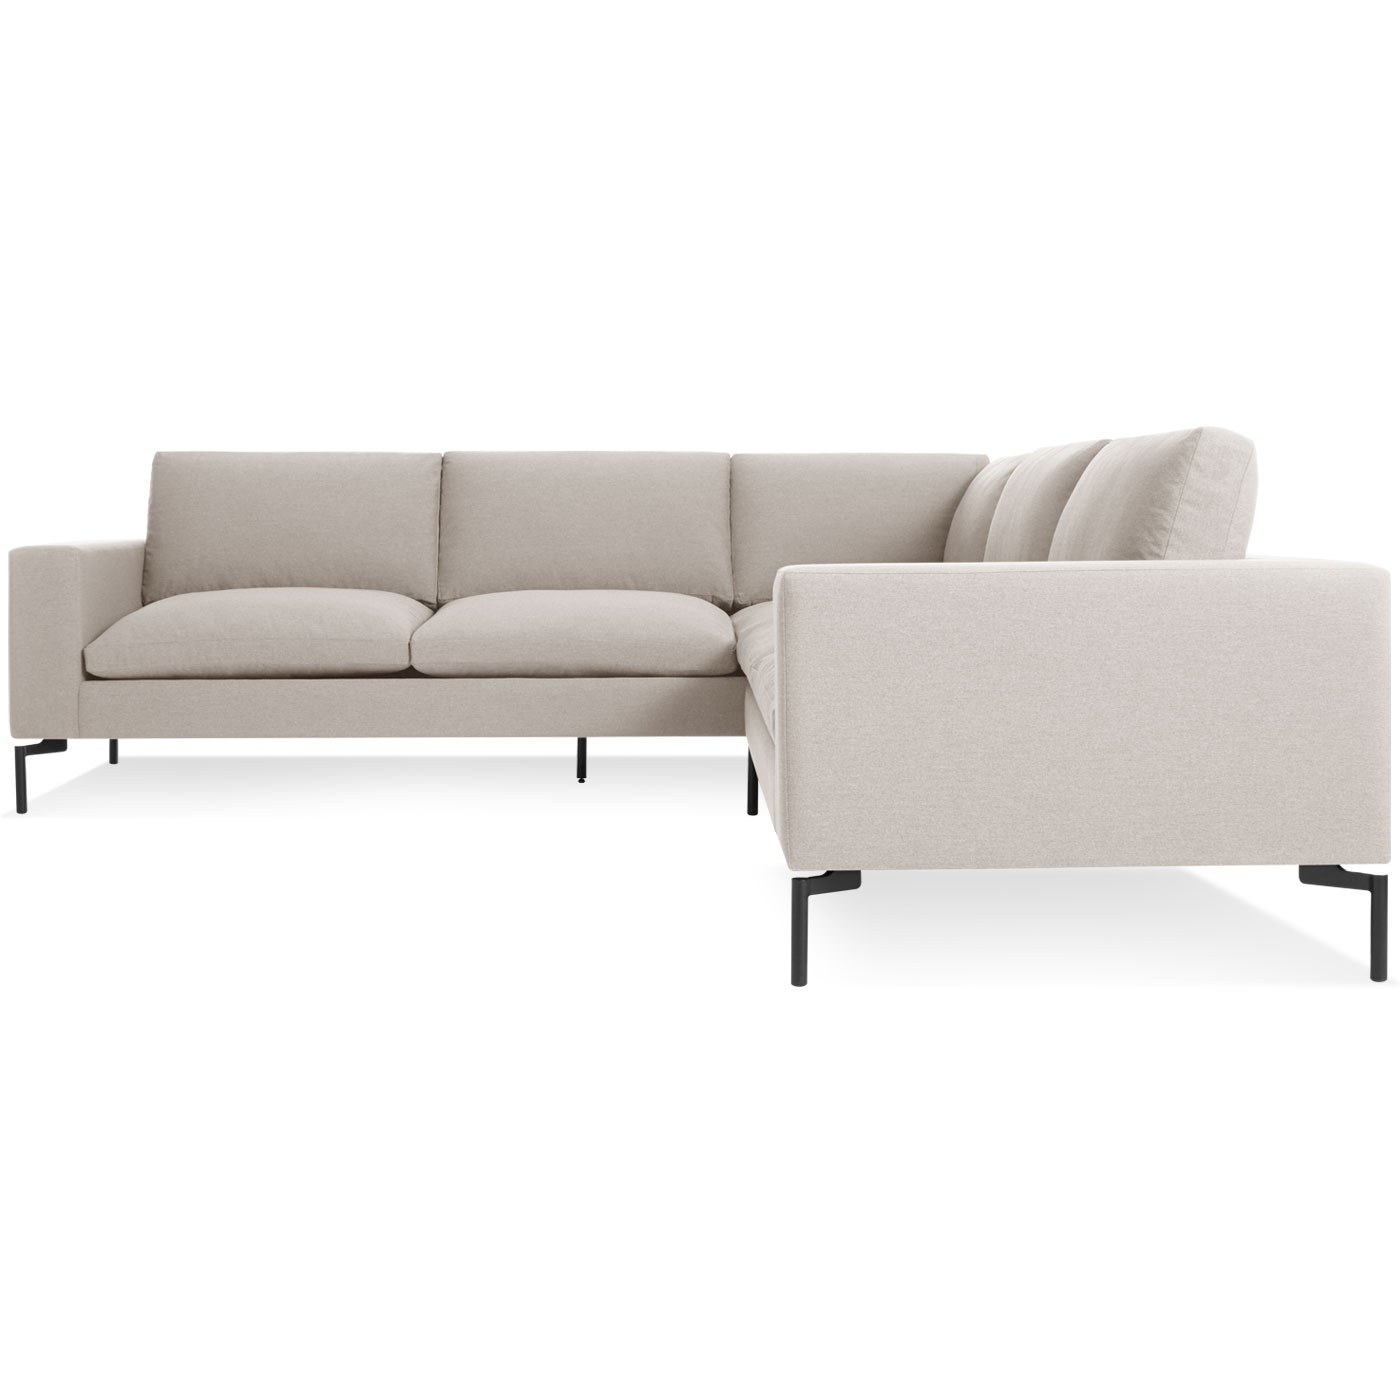 New Standard Small Sectional Sofa   Modern Sofas And Sectionals Pertaining To Sydney Sectional Sofas (Photo 6 of 10)